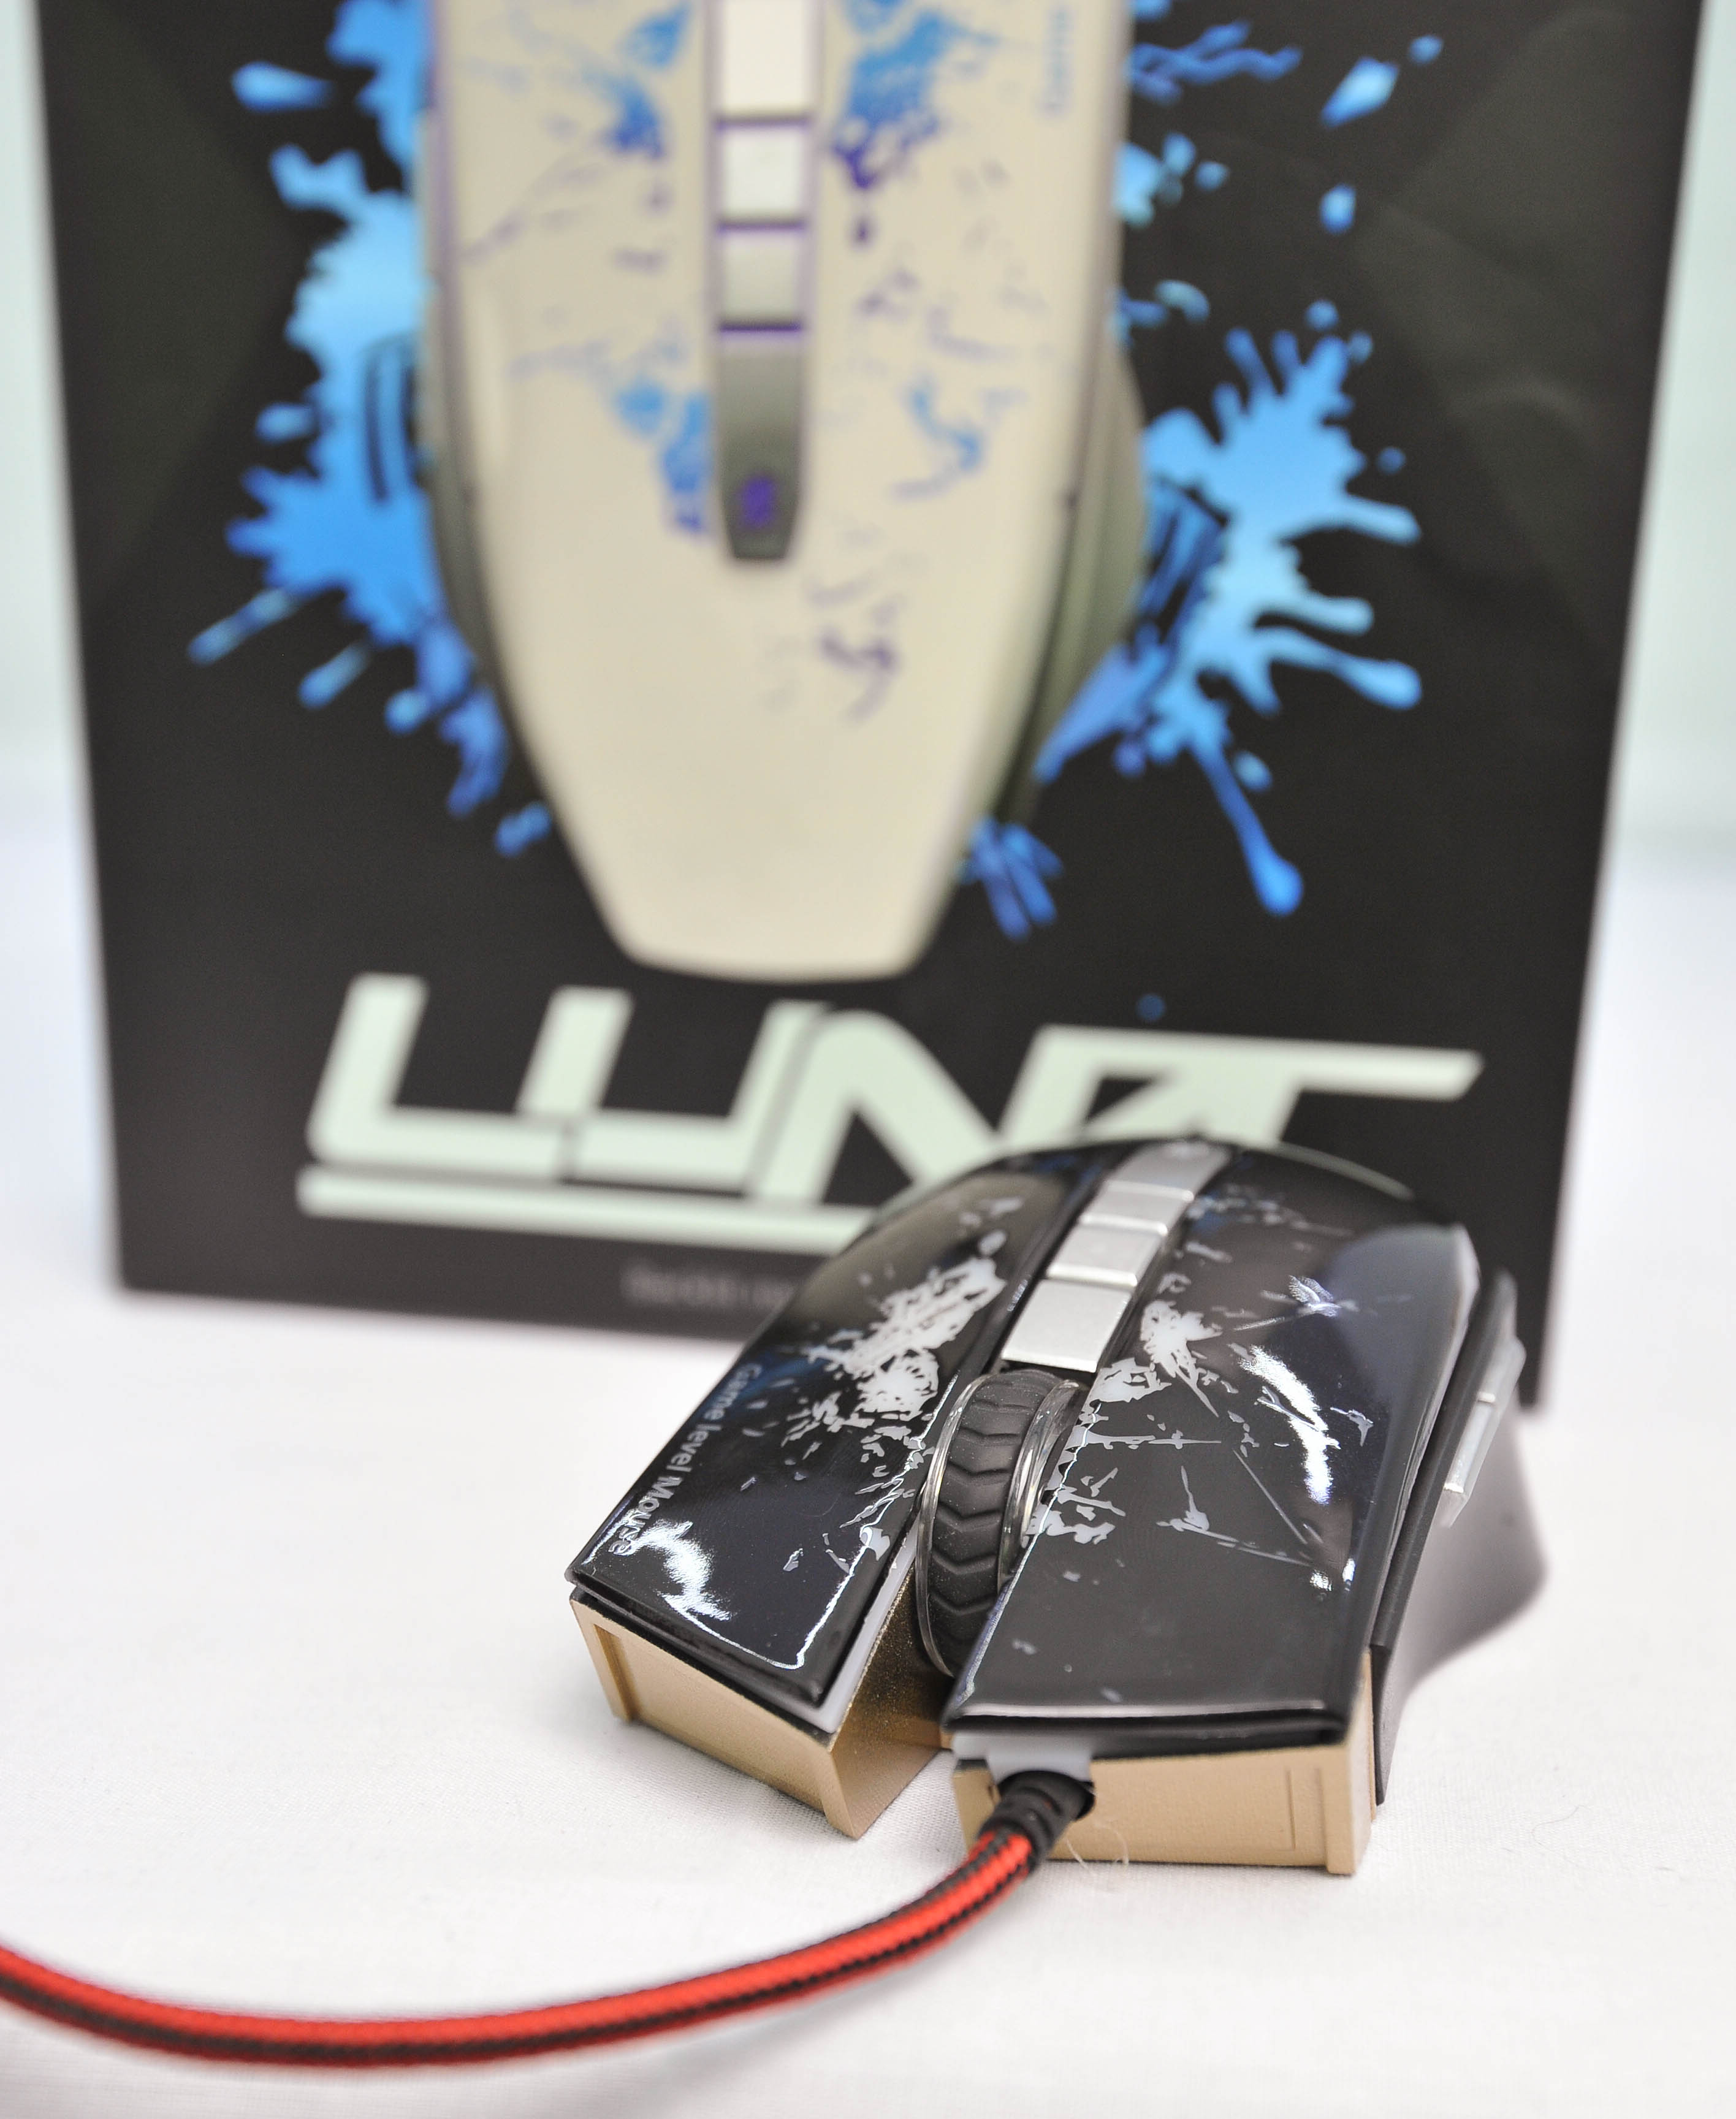 Infinity Luna White - 2400 DPI Gaming Mouse